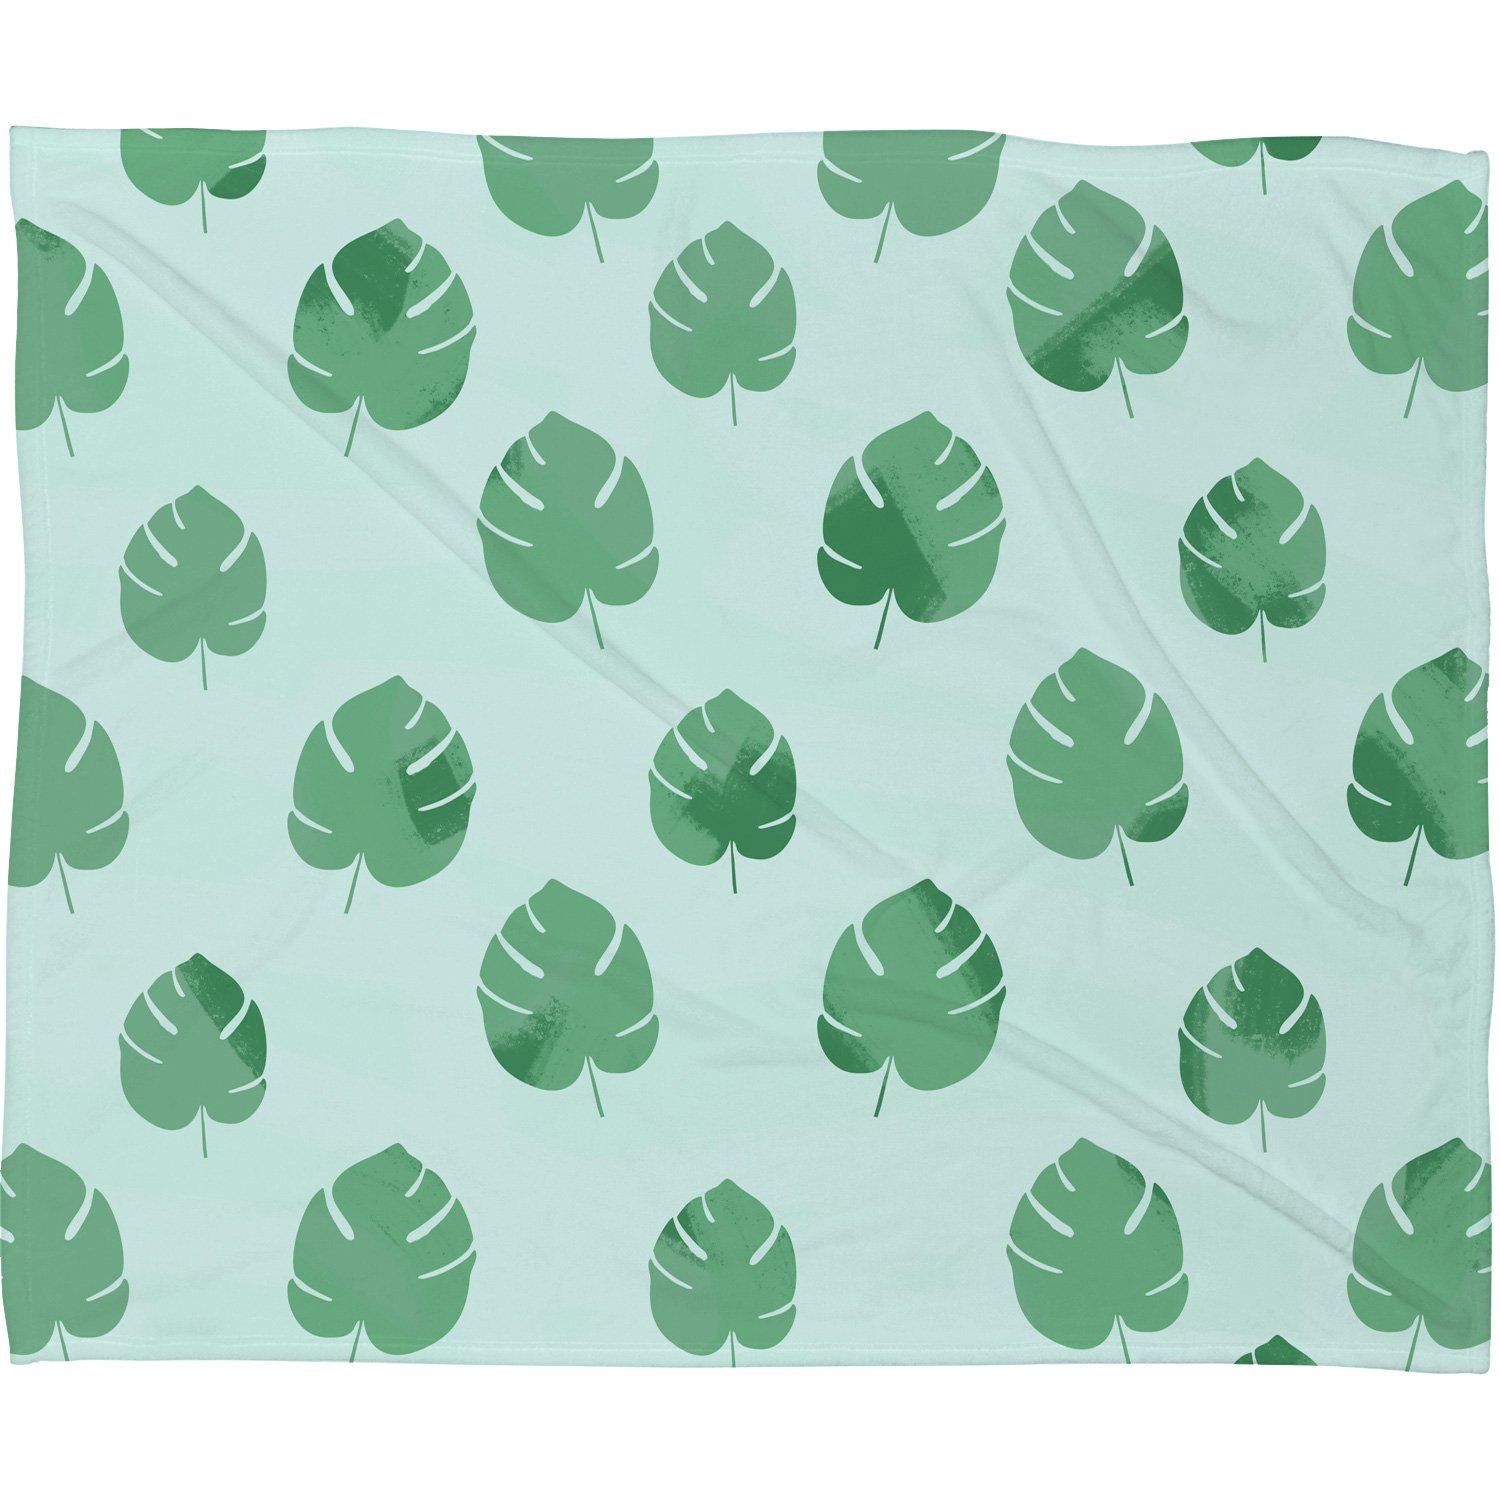 Deny Designs Palm Spring Leaves Plush Fleece Throw Blanket 50 X 60